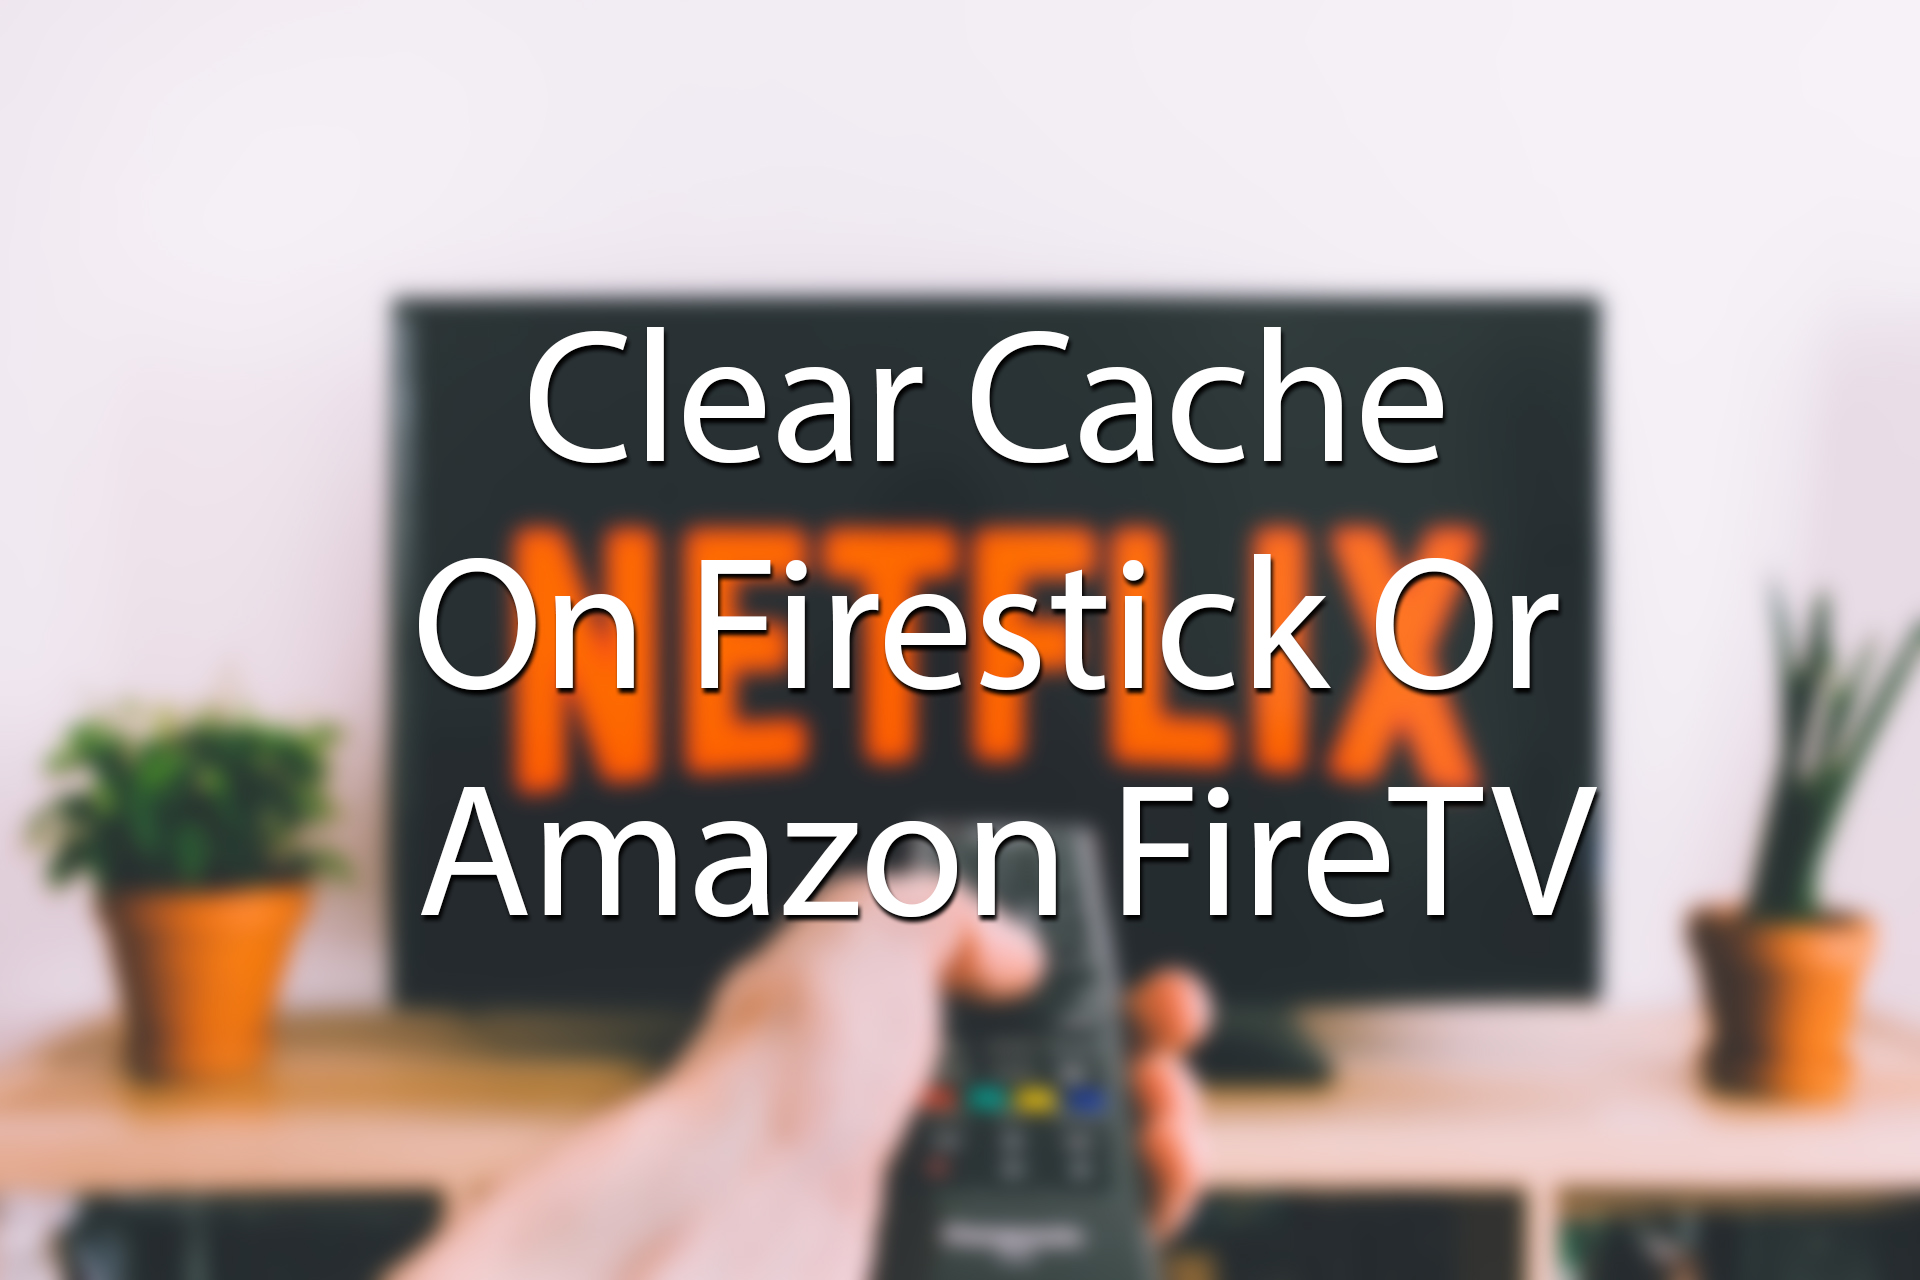 Clear Cache On Firestick Or Amazon FireTV